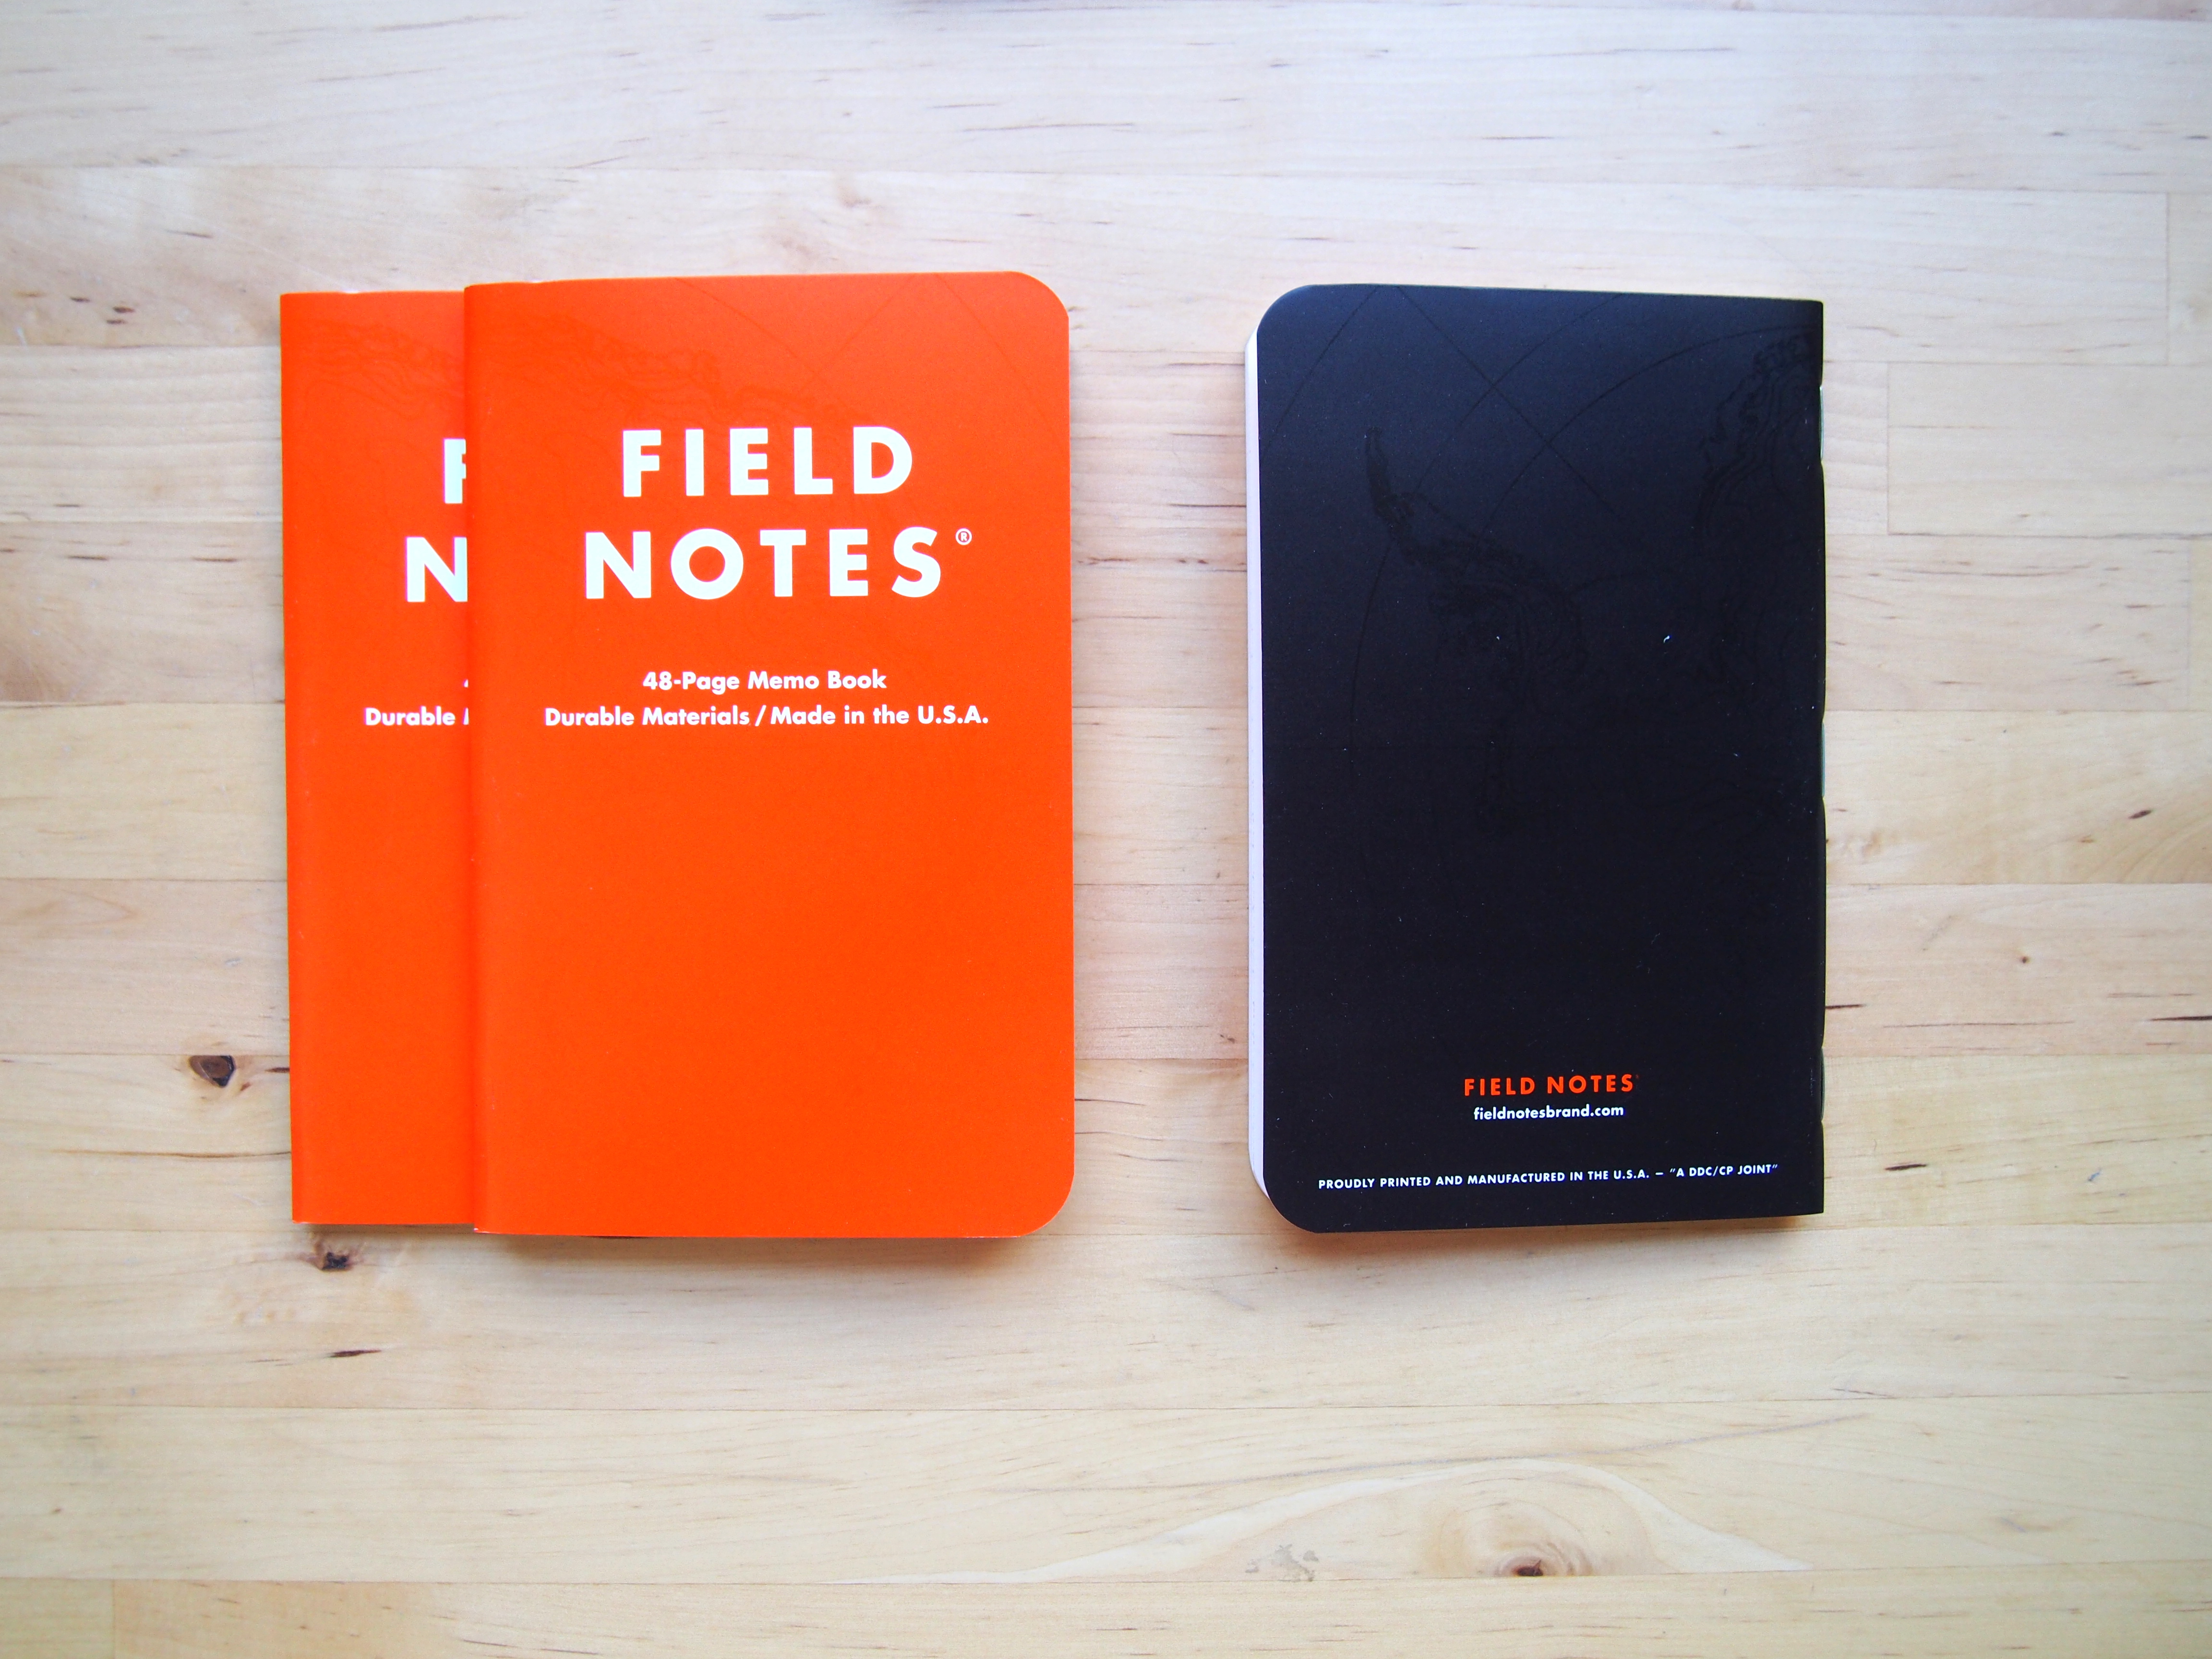 Expedition Field Notes Toronto Canada Wonderpens.ca Wonder Pens Blog